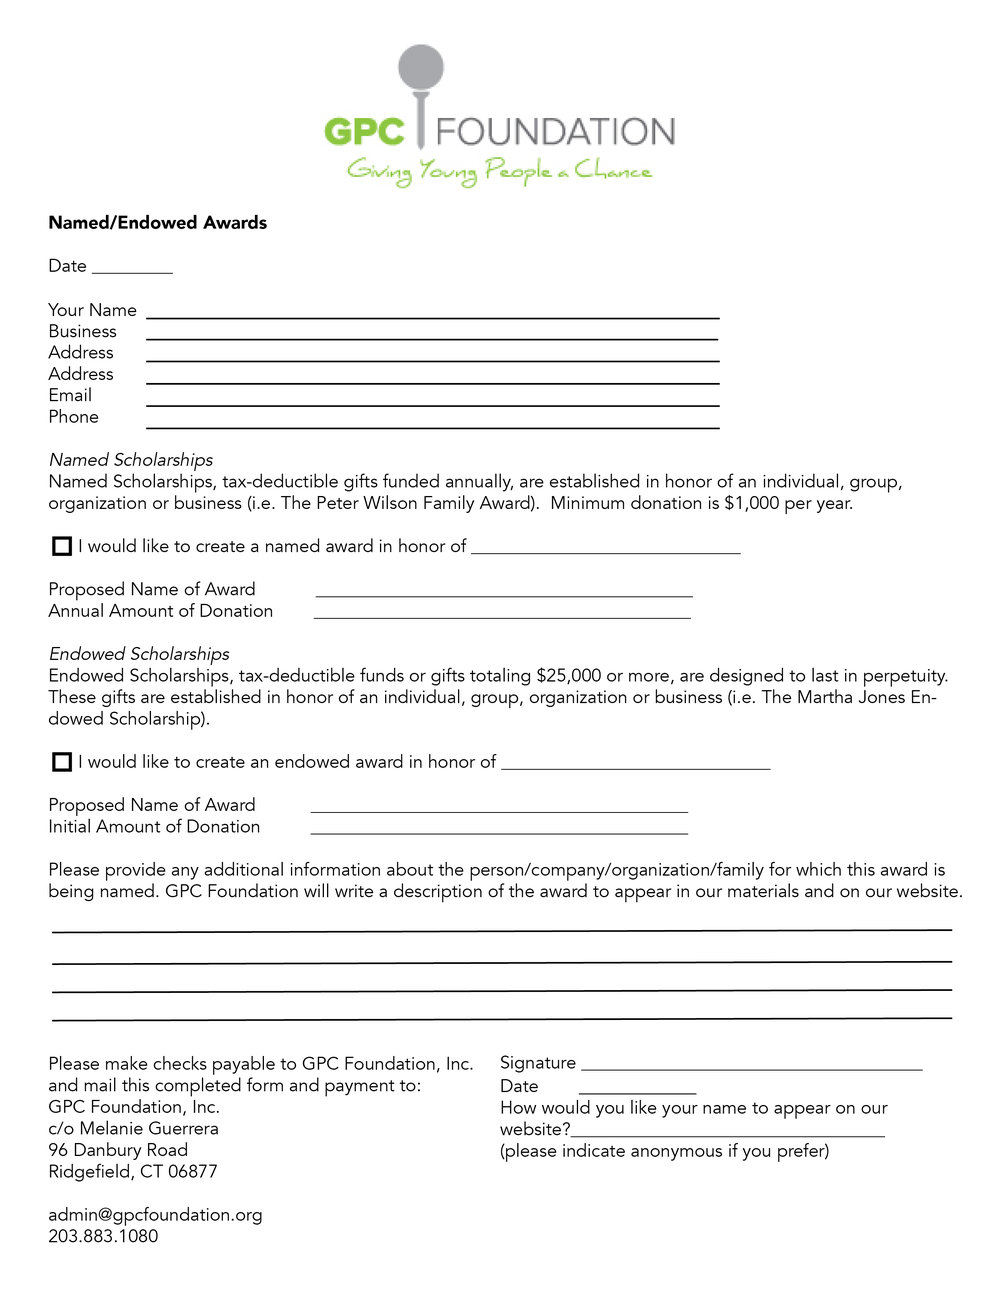 GPC Endowed Donor Form2.jpg